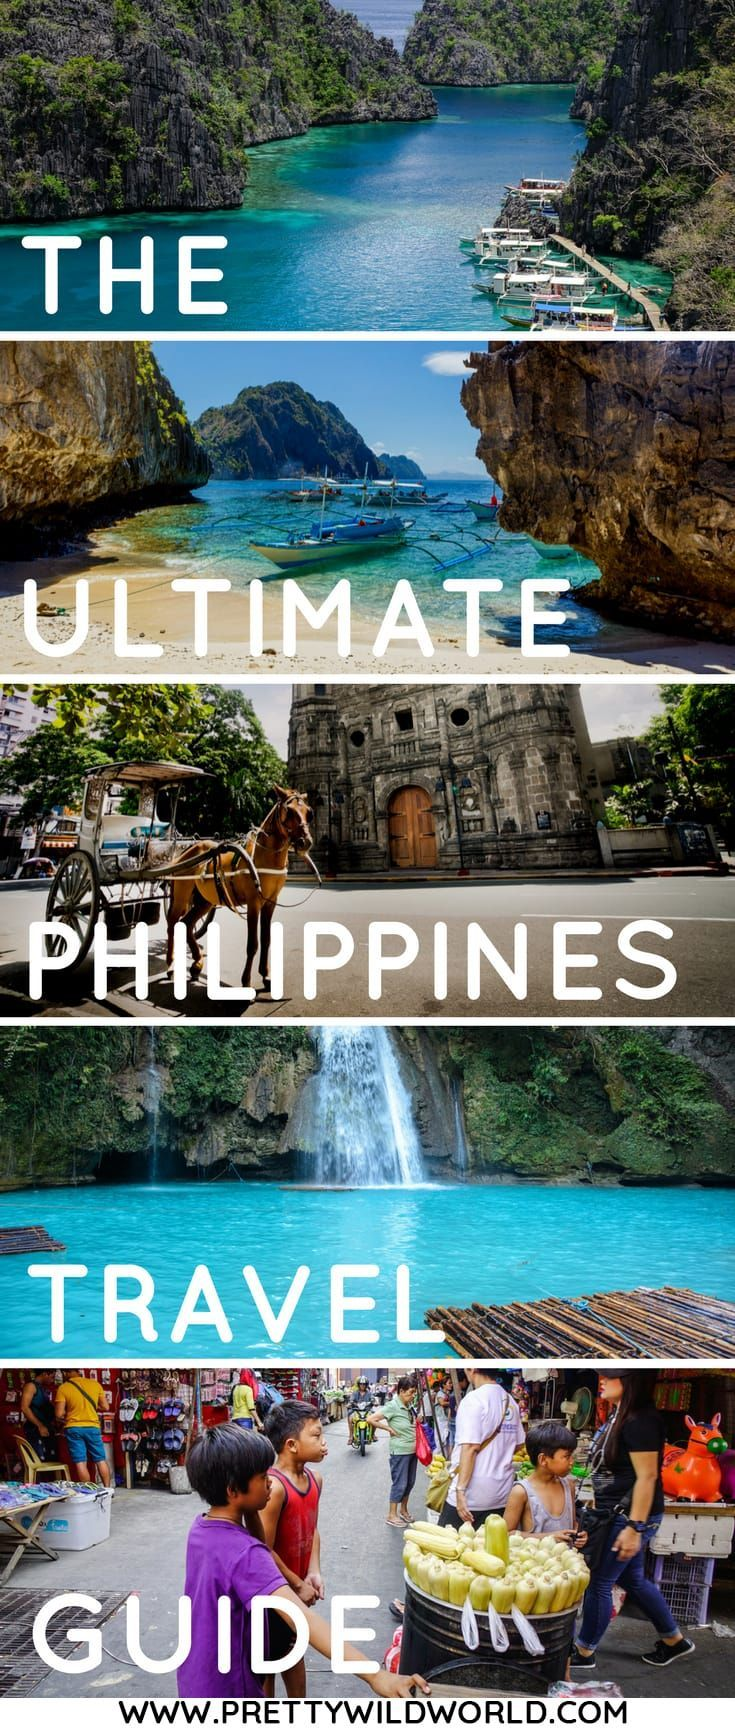 #PHILIPPINES #ASIA #TRAVEL | The Philippines Travel Guide | Things to do in the Philippines | The Philippines points of interest | What to do in the Philippines | Things to see in the Philippines | Places to visit in the Philippines via @prettywildworld